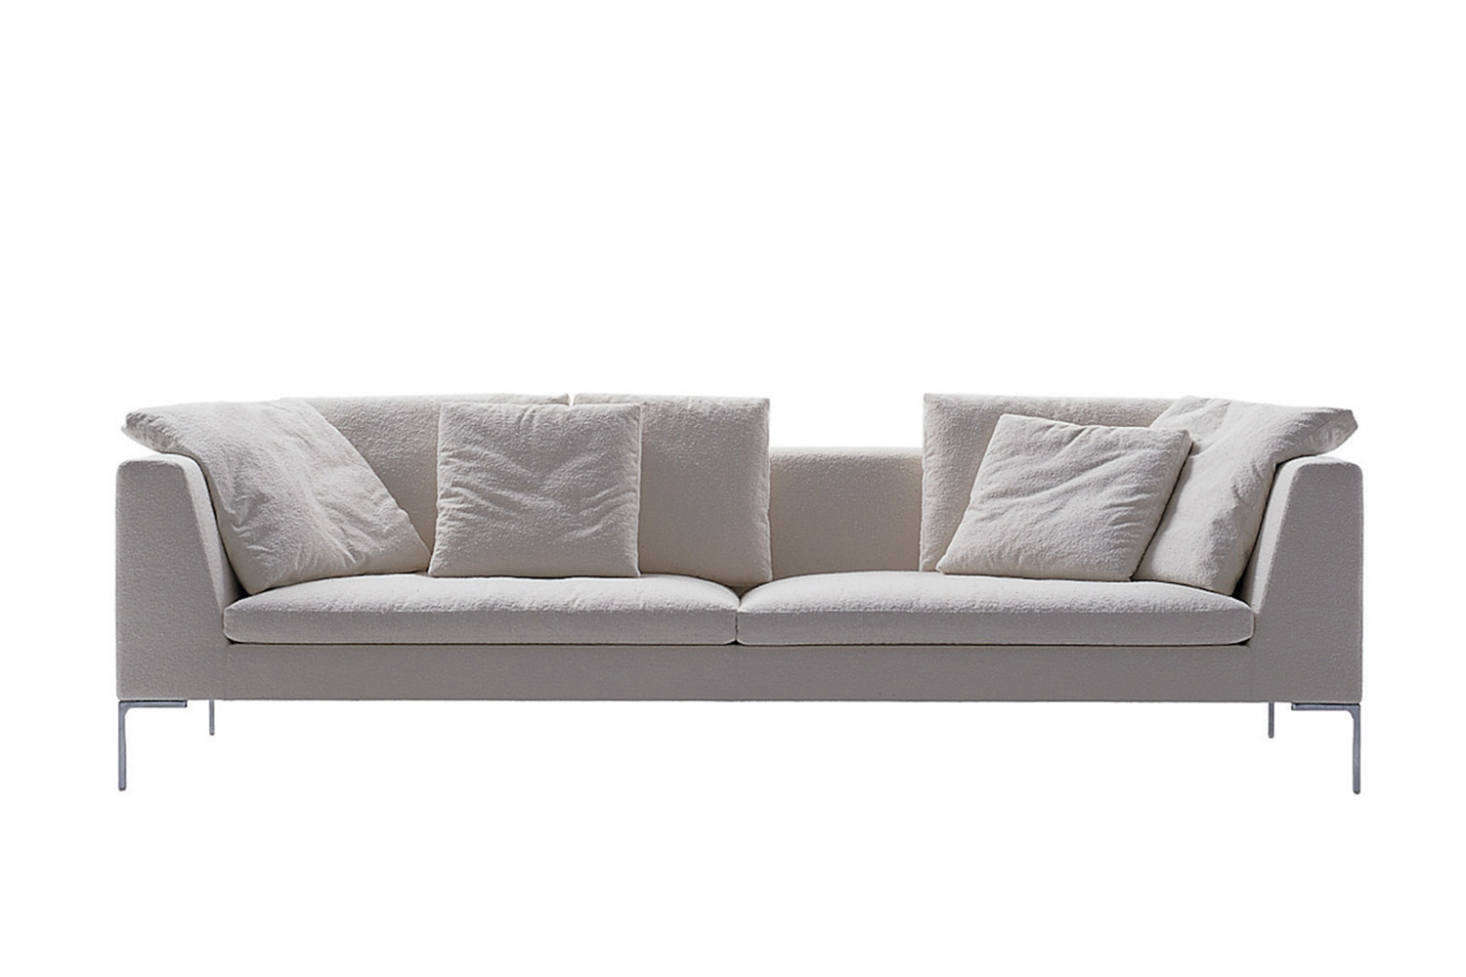 The Antonio Citterio-designedCharles Large Sofaby B&B Italia is a Remodelista favorite (see our post5 Favorites: The Ultimate Architect-Designed Sofa). It comes in a range of sizes and configurations, one of which has a chaise-like extension. Contact B&B Italia for pricing and more information.